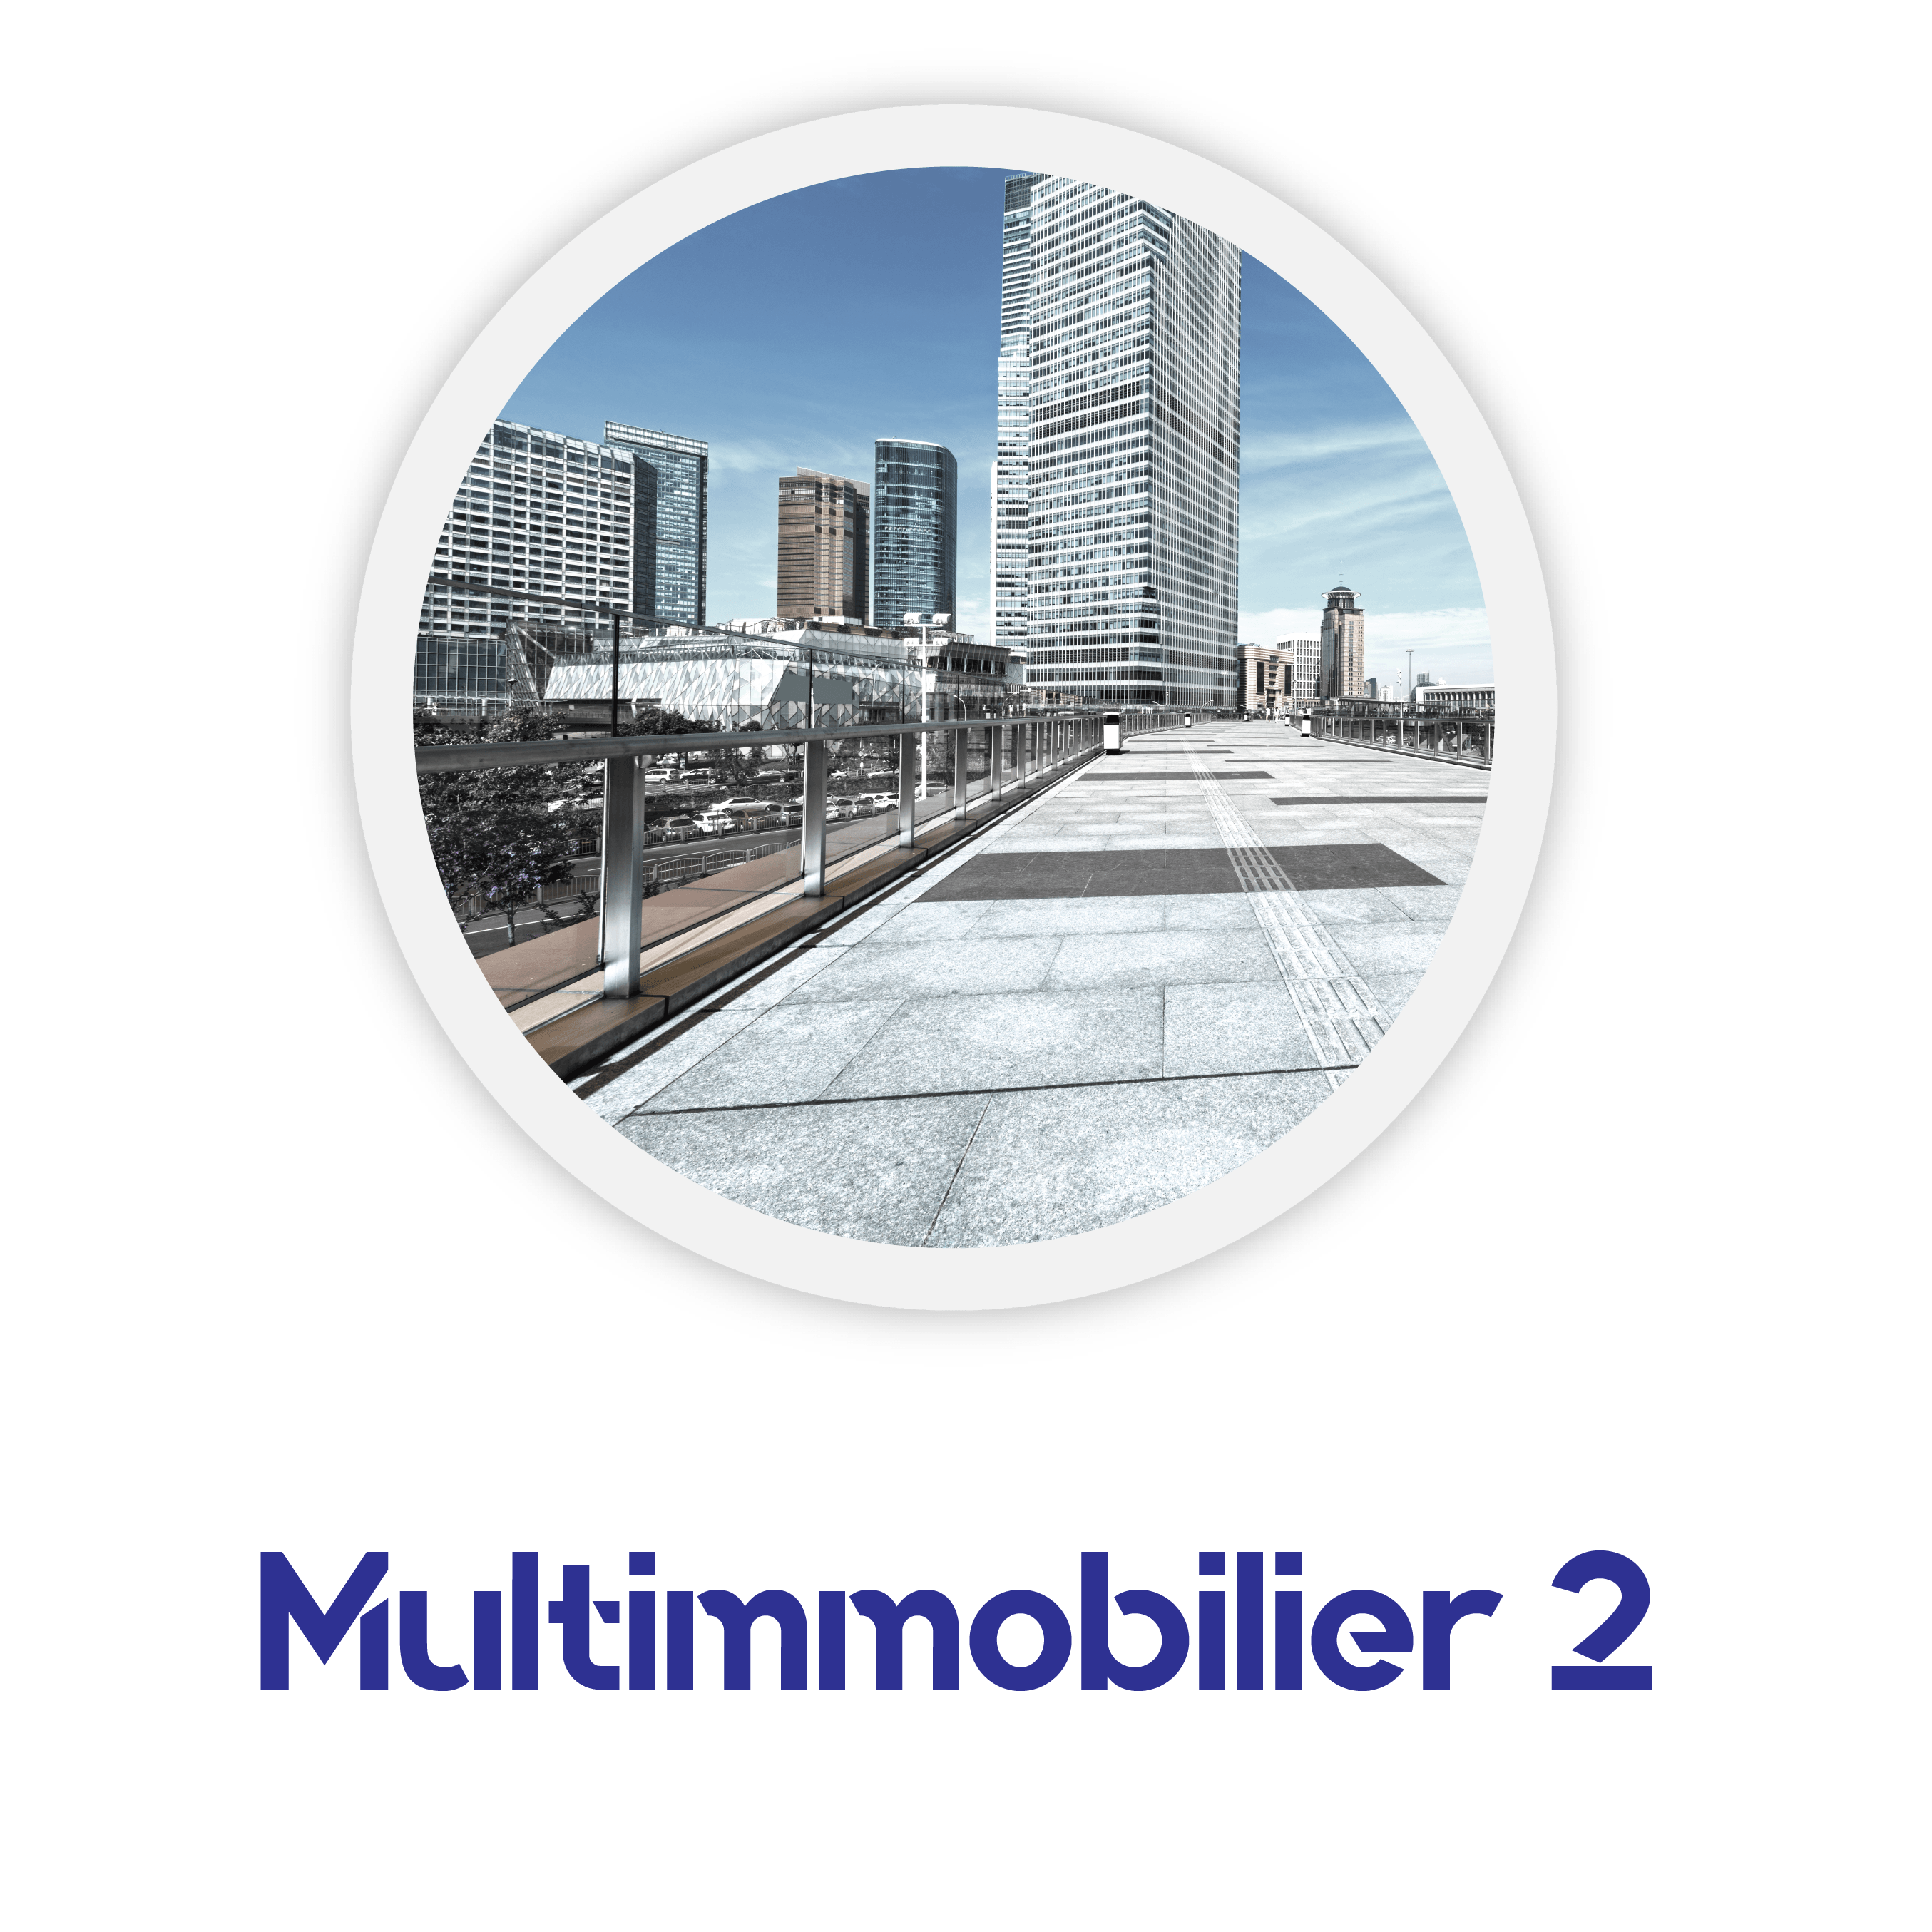 Multimmobilier 2